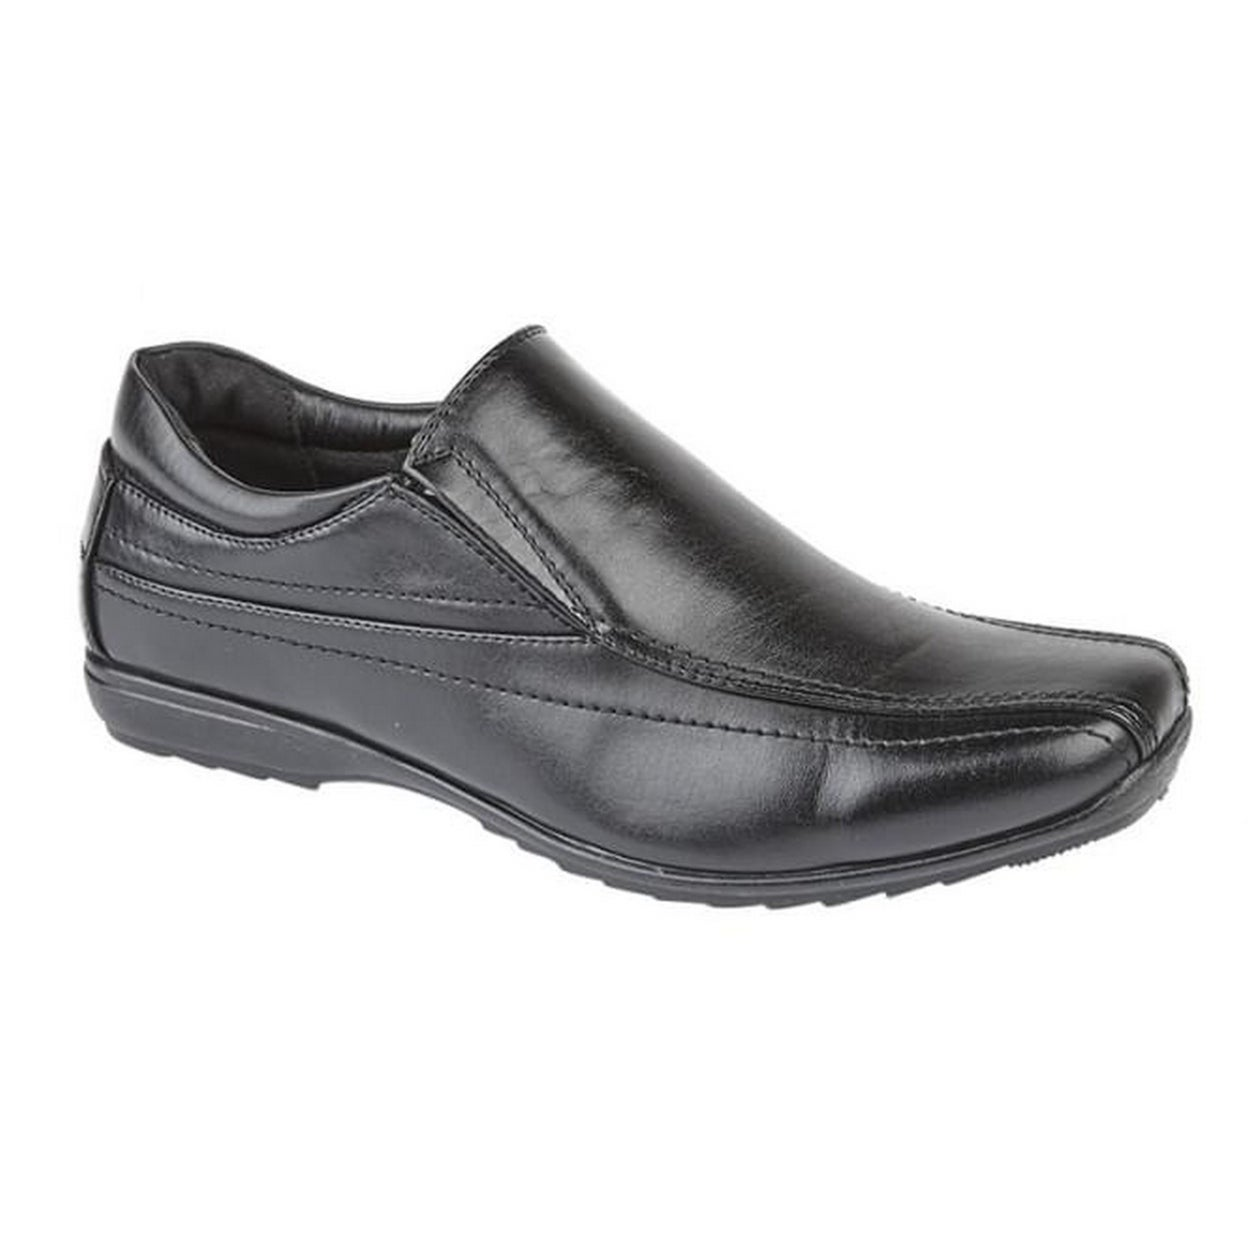 Mirak Mens Clipper Slip On Leather Smart Casual Loafer Shoes